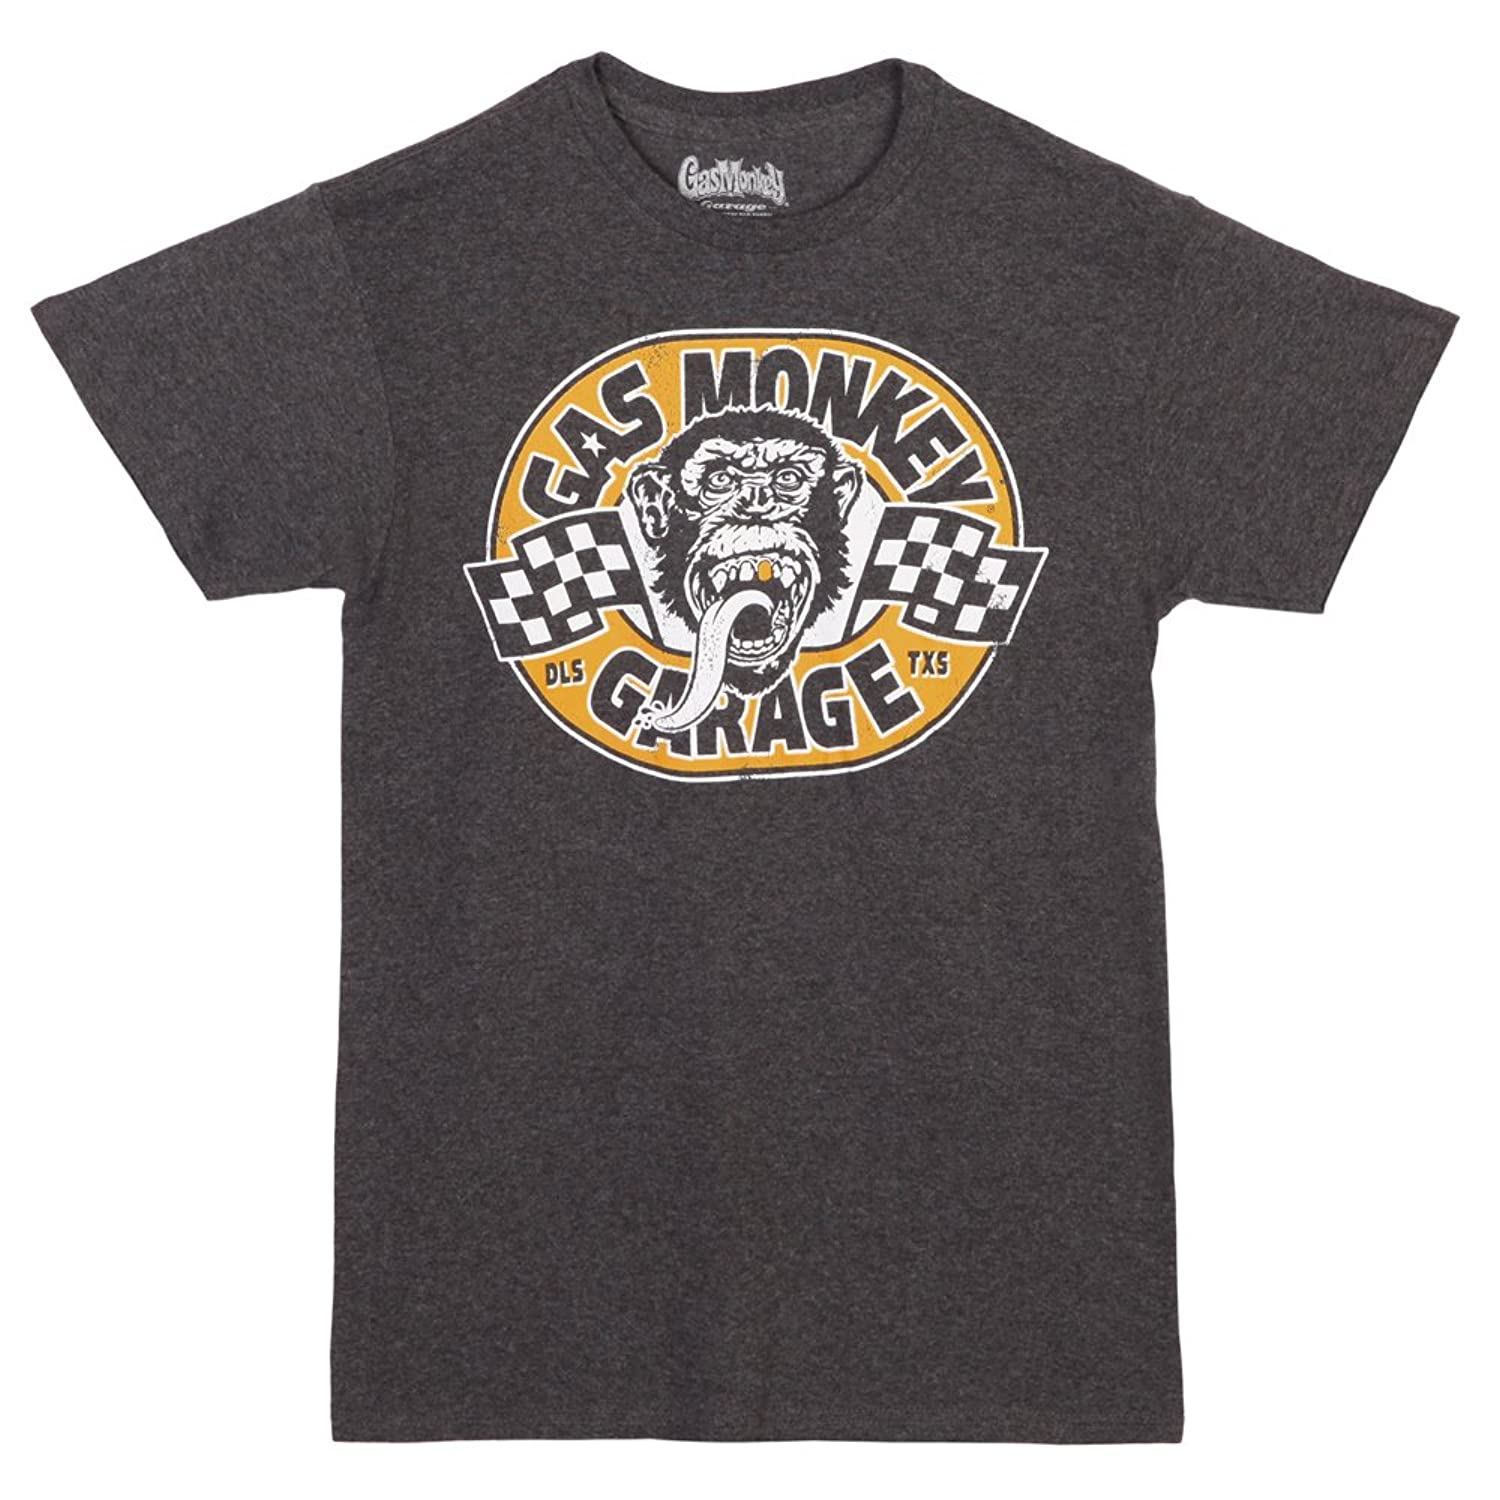 Gas Monkey Garage Eliminator Adult T-shirt